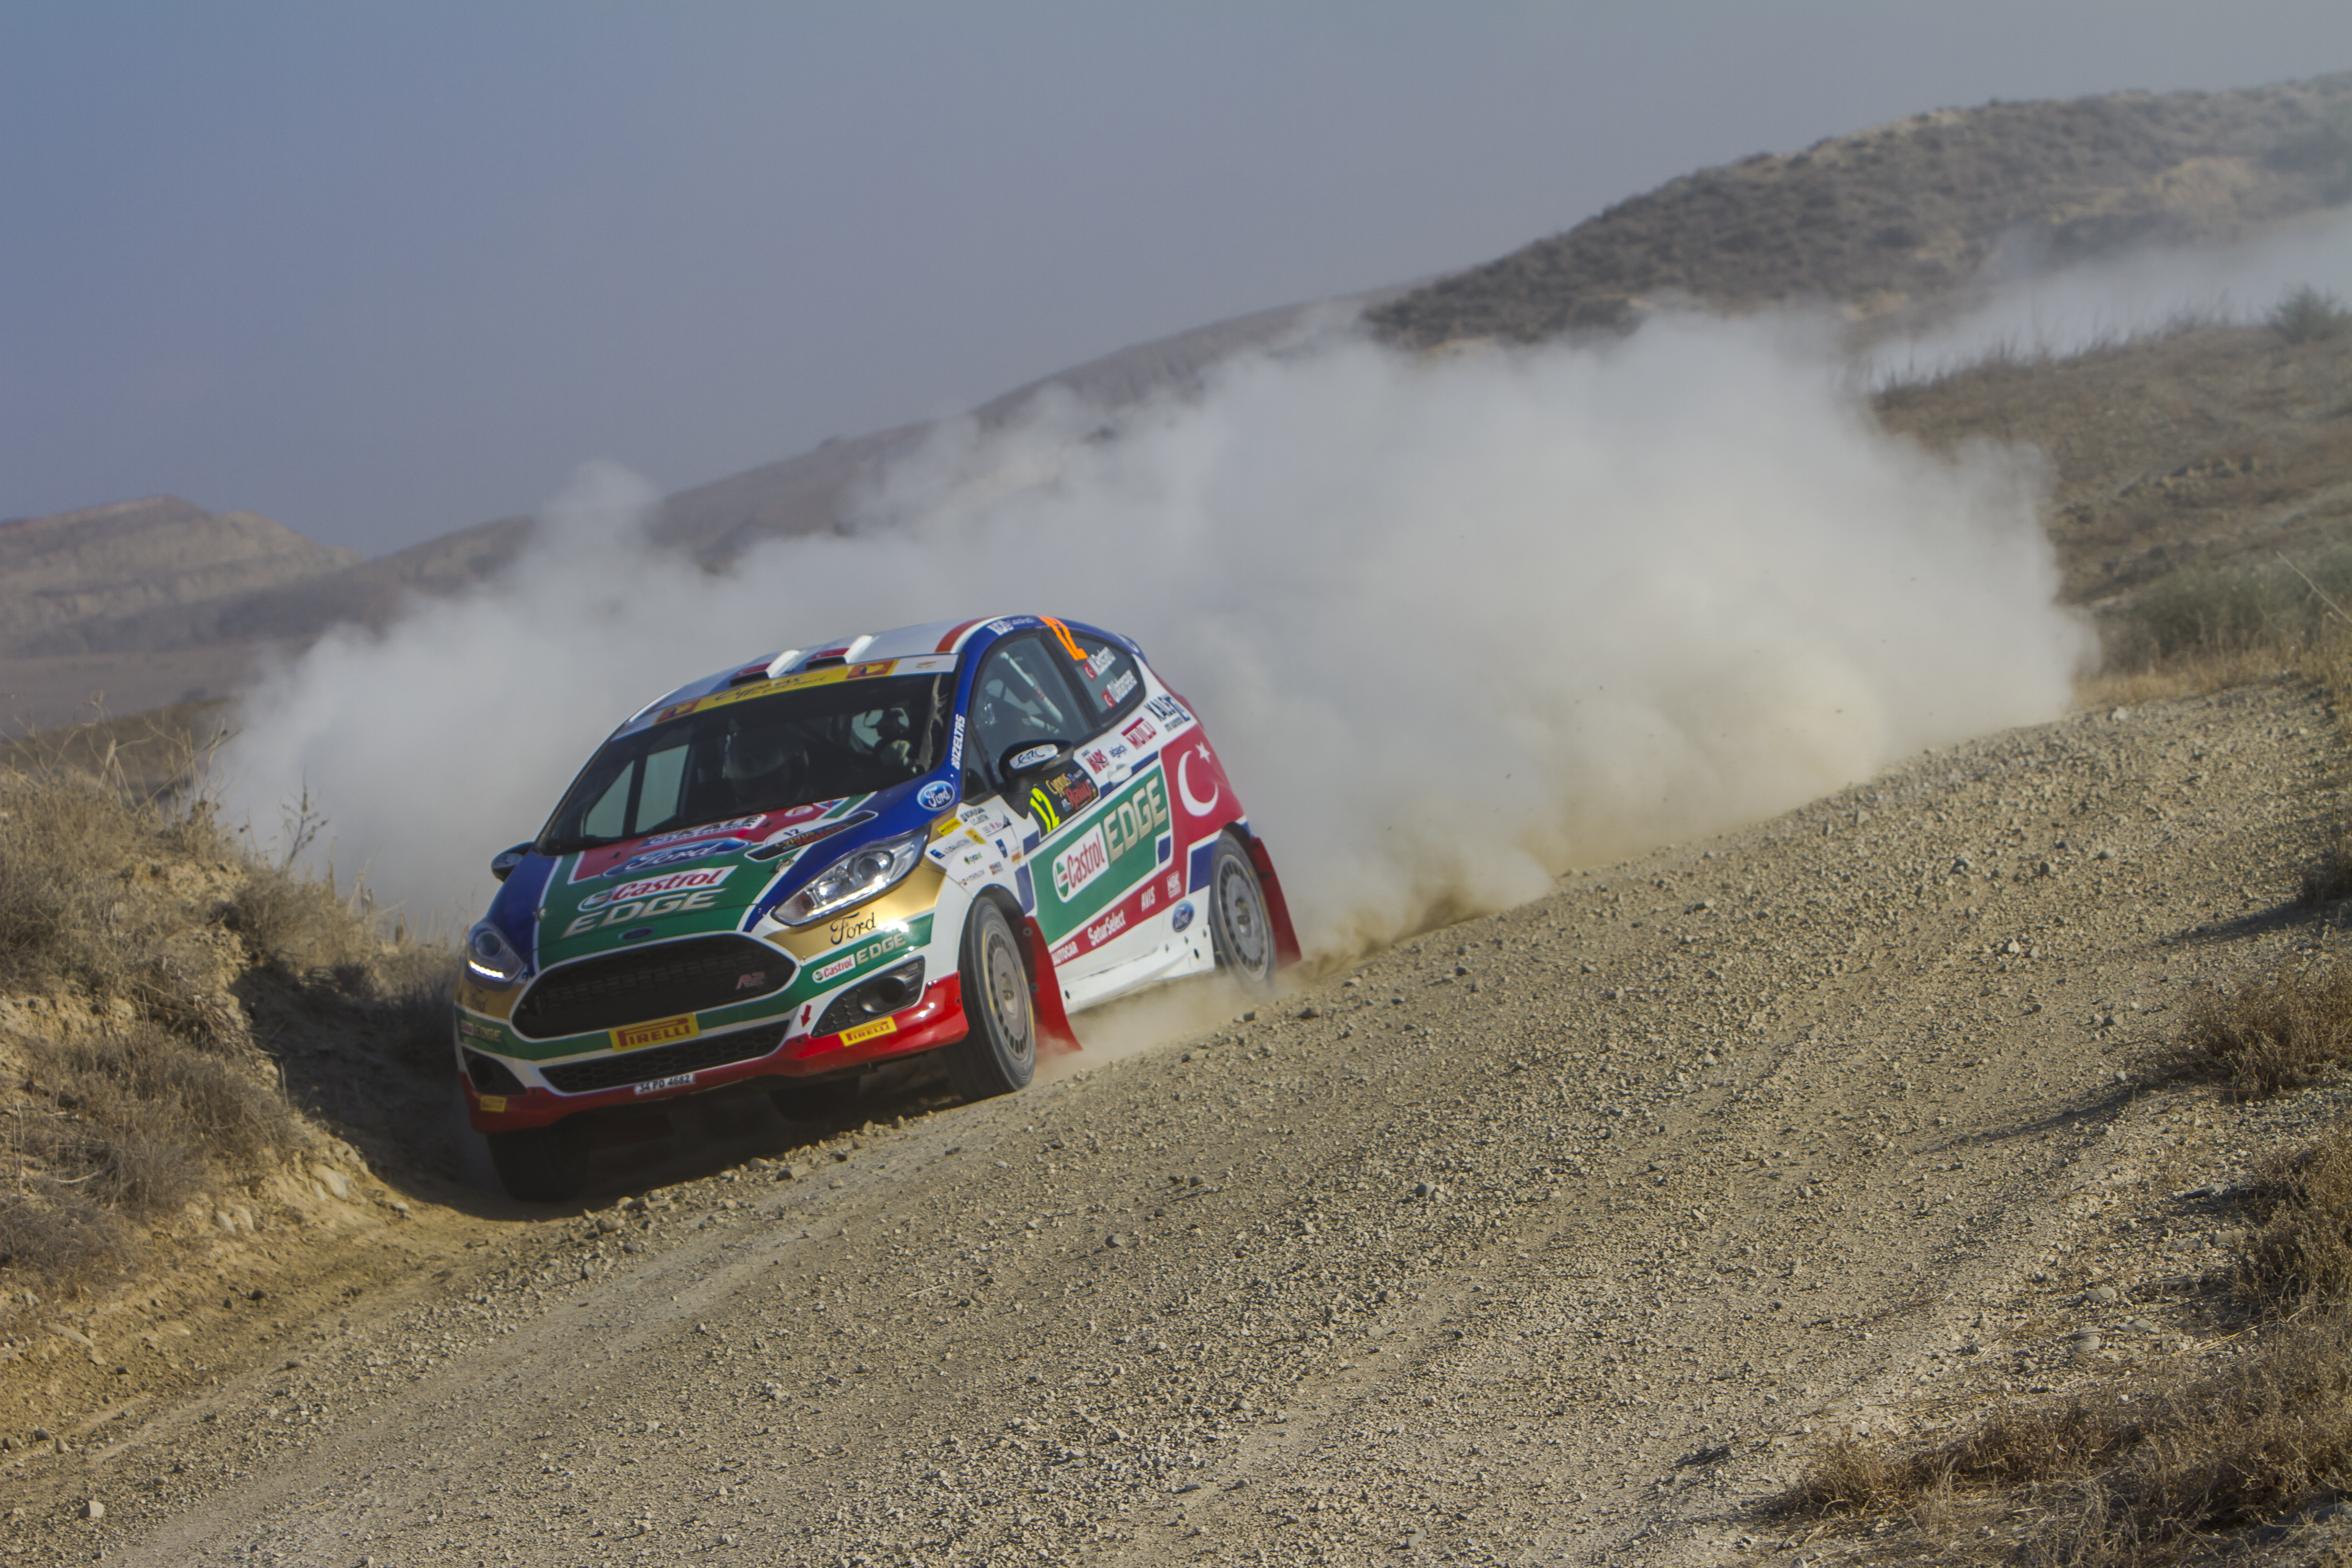 Bostanci and team in charge in ERC3